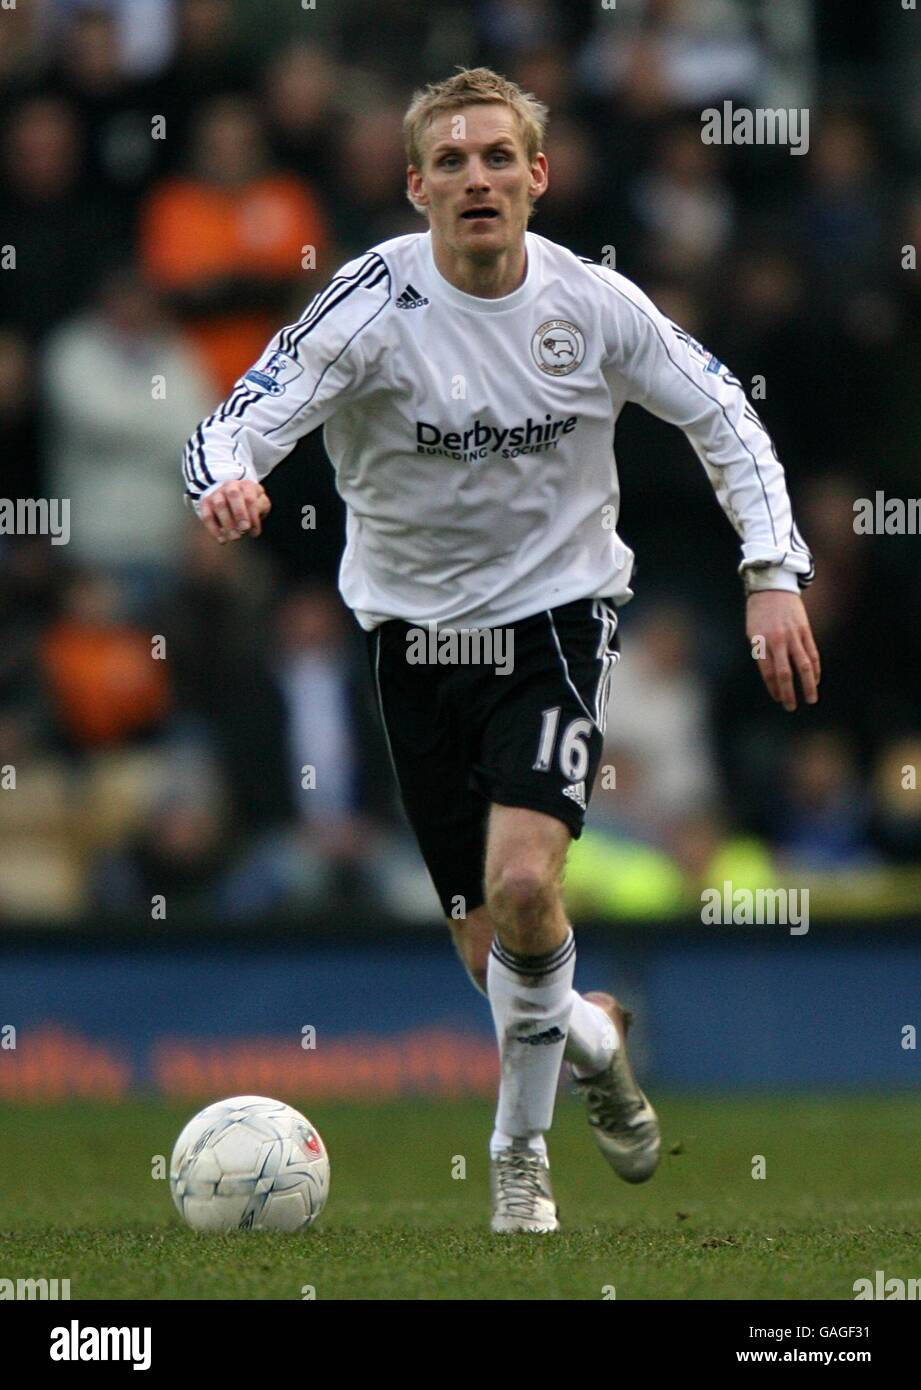 Soccer - FA Cup - Third Round - Derby County v Sheffield Wednesday - Pride Park - Stock Image